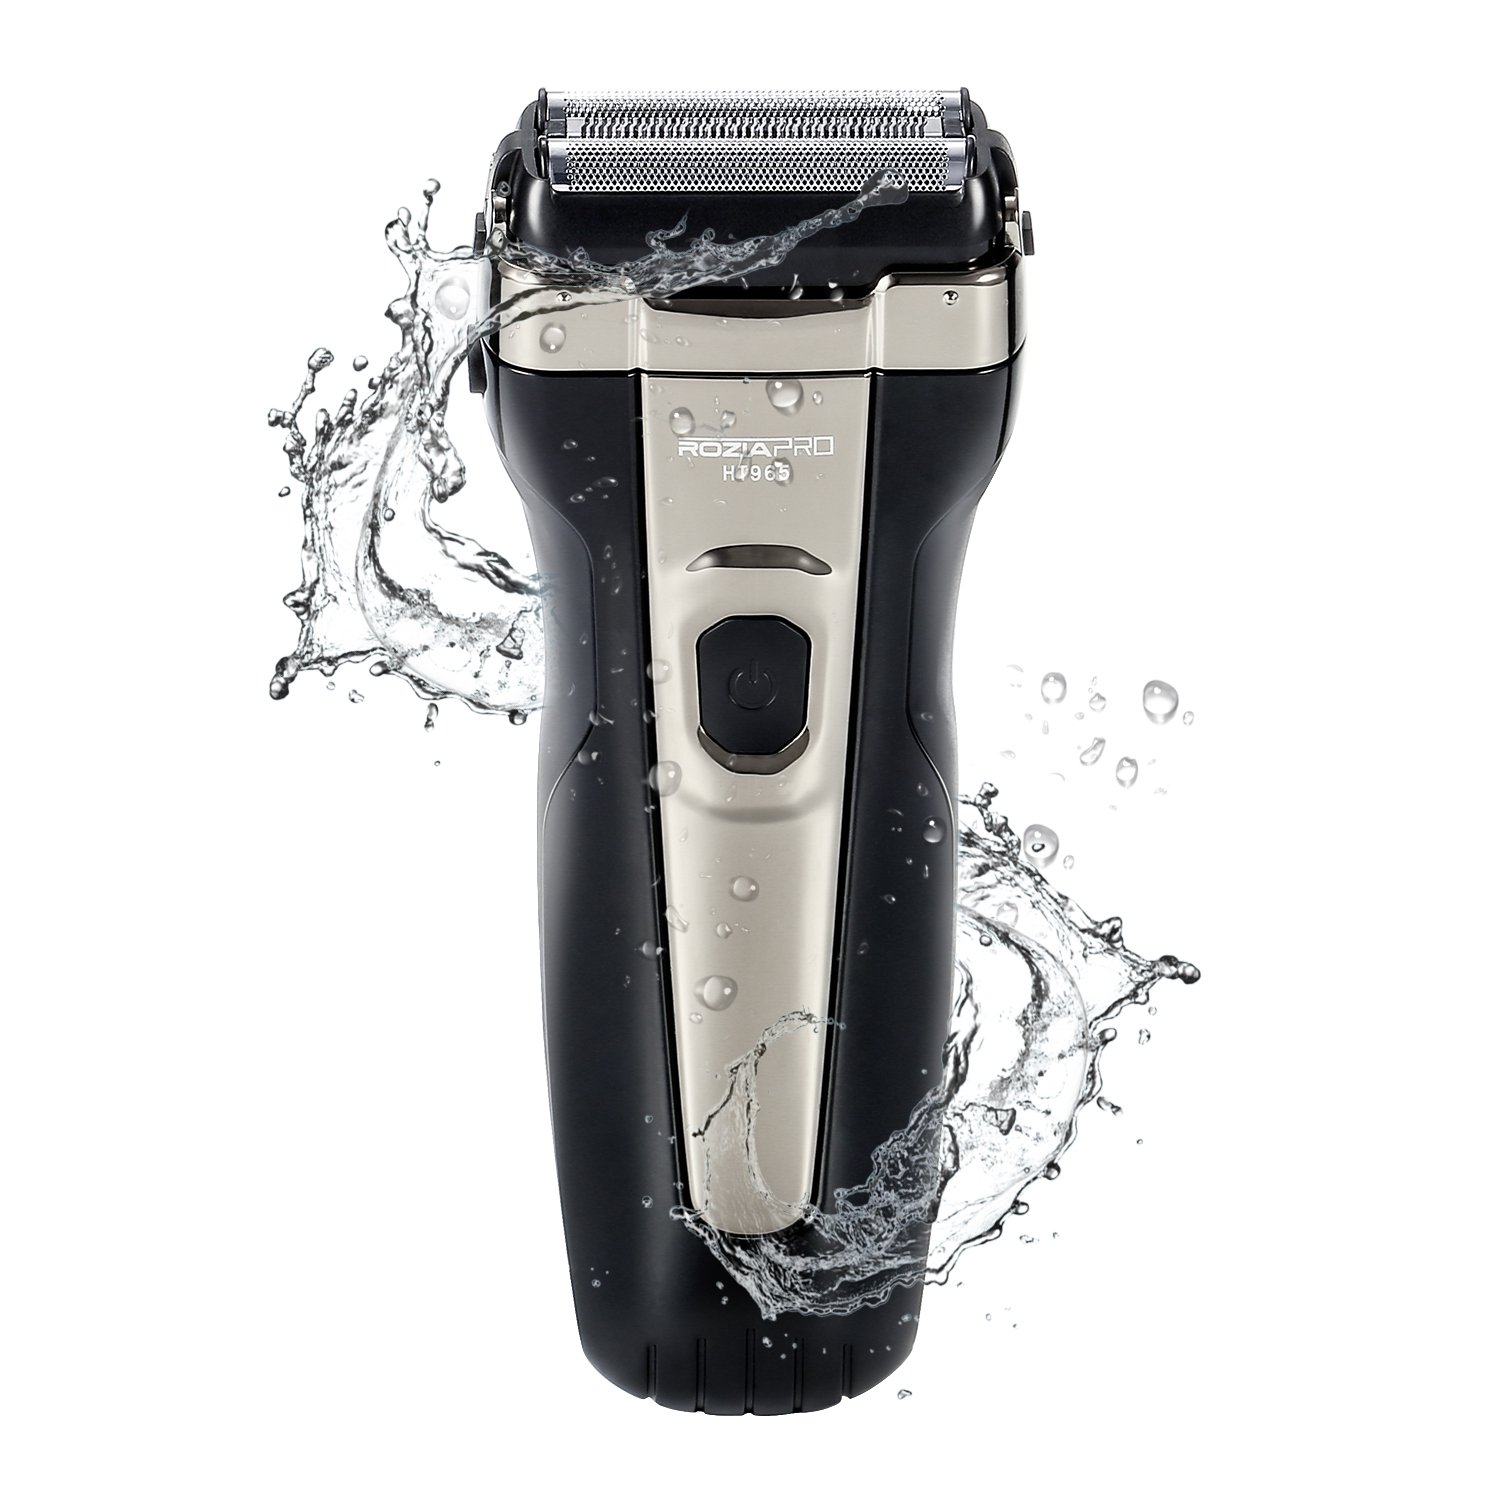 Electric Foil Shaver for Men Wet and Dry USB Rechargeable Corded Cordless Waterproof Electric Beard Trimmer Razor Pop-up Trimmer ROZIAPRO